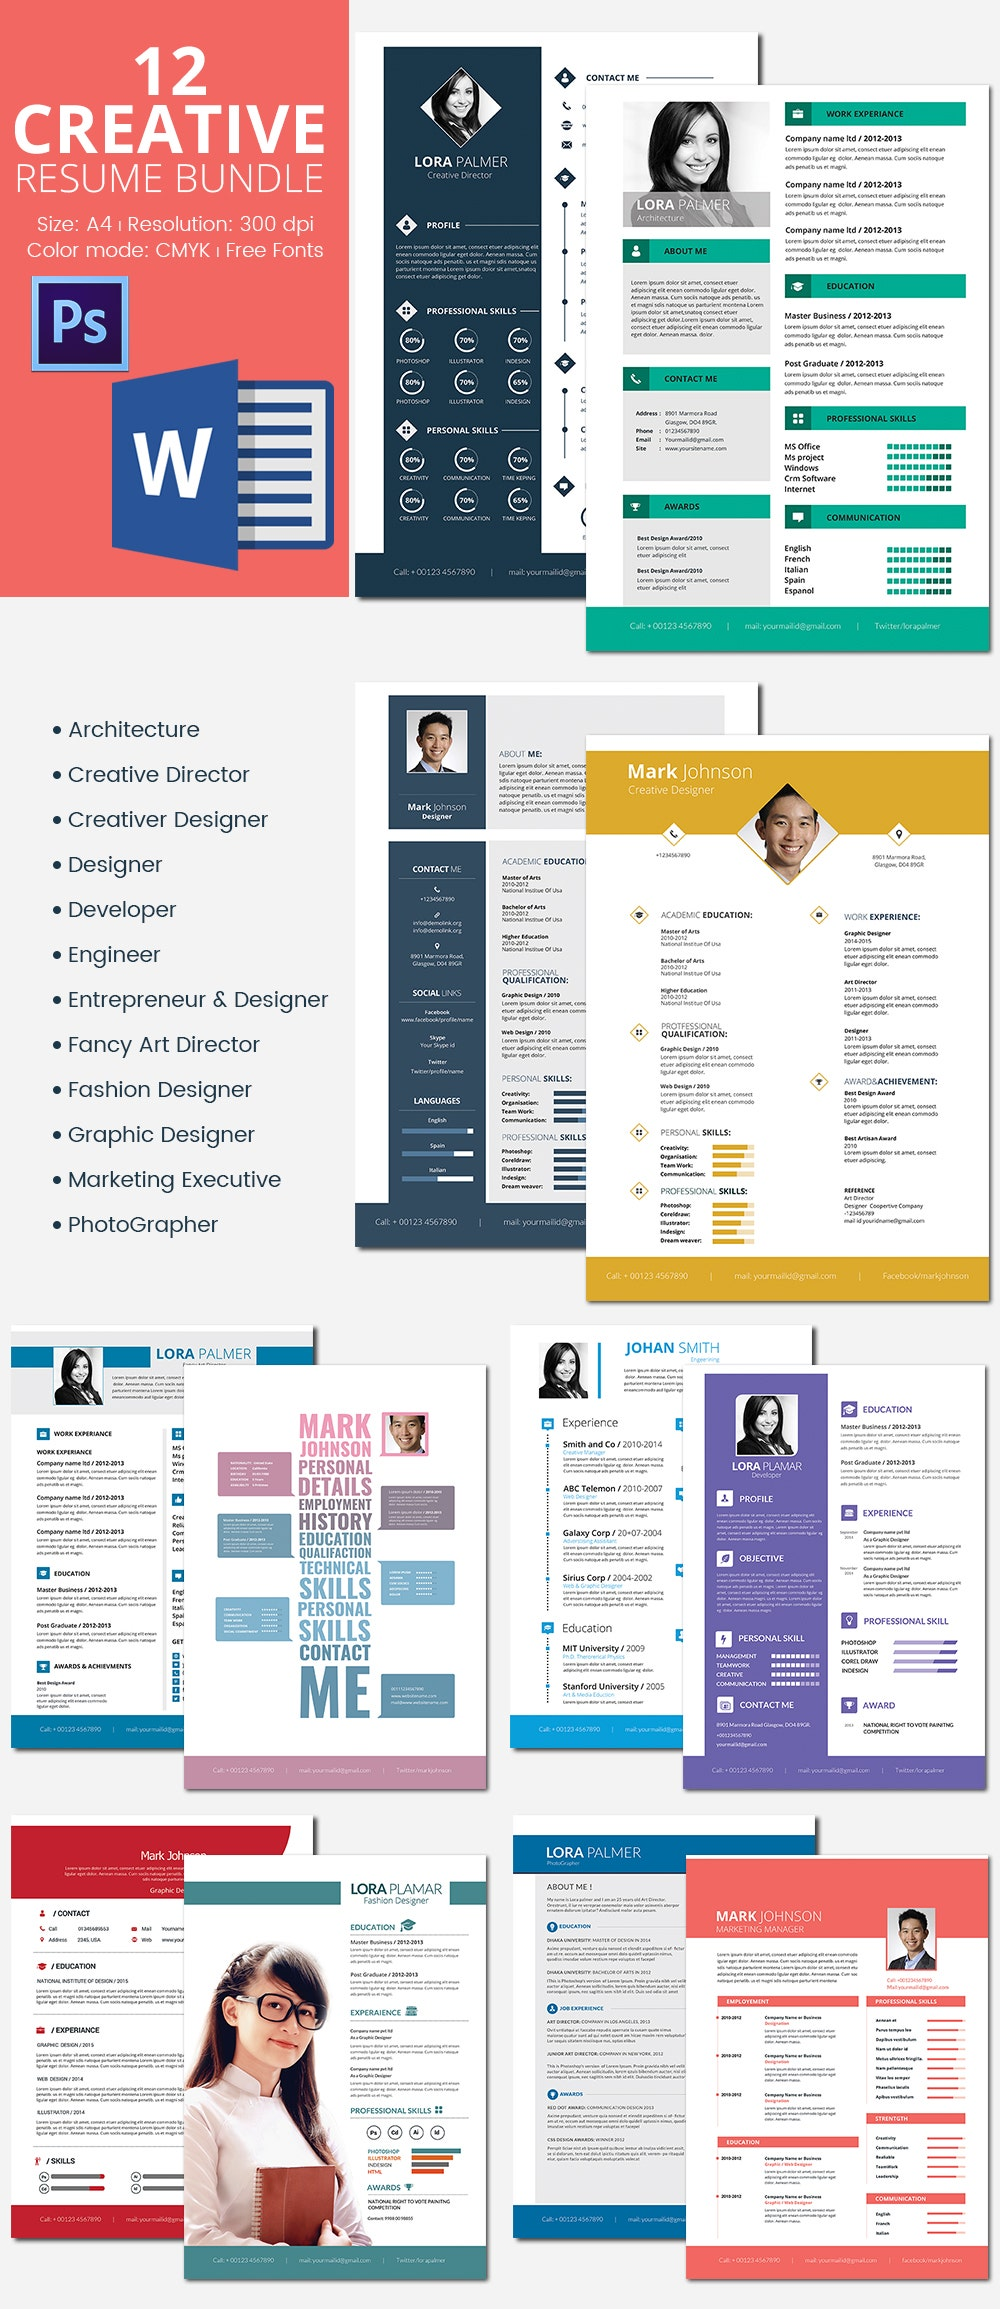 12 resumes bundle template - Resume Format Pdf Or Word Download